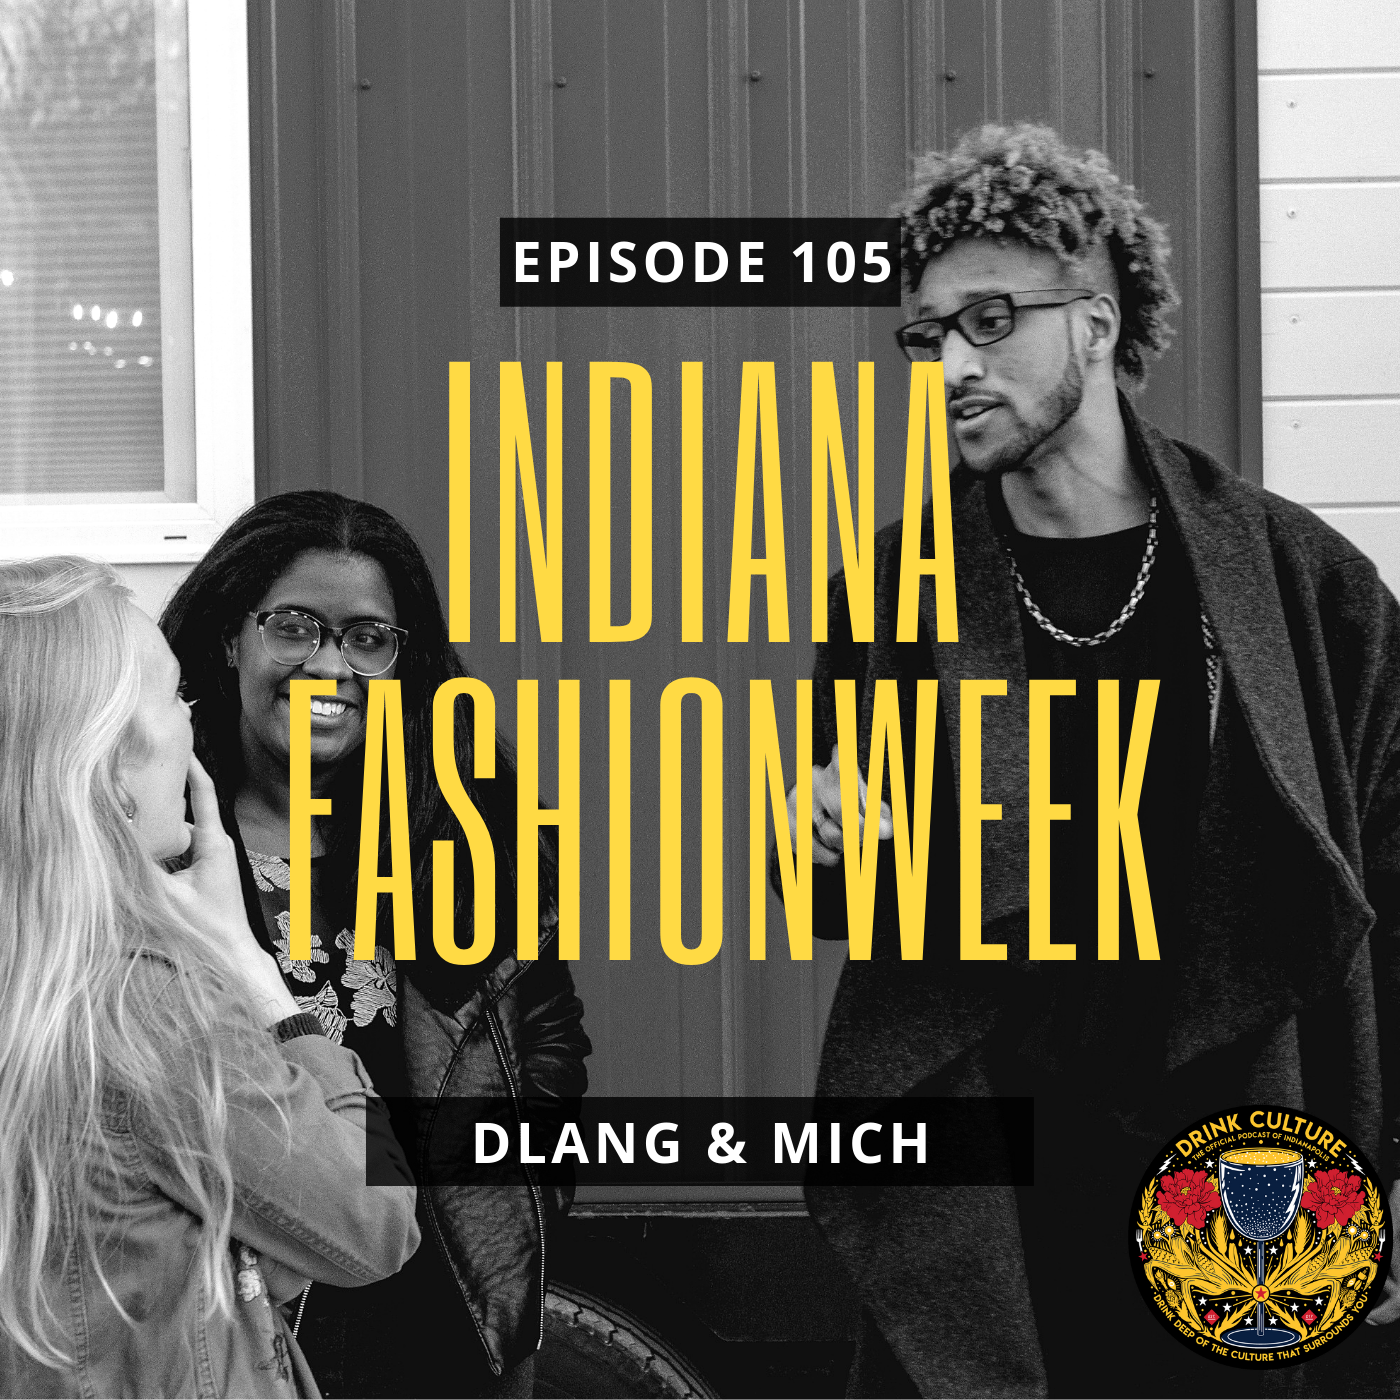 Episode 105: Indiana Fashion Week, Denisha Dlang Ferguson & Mich(ael) Weston -